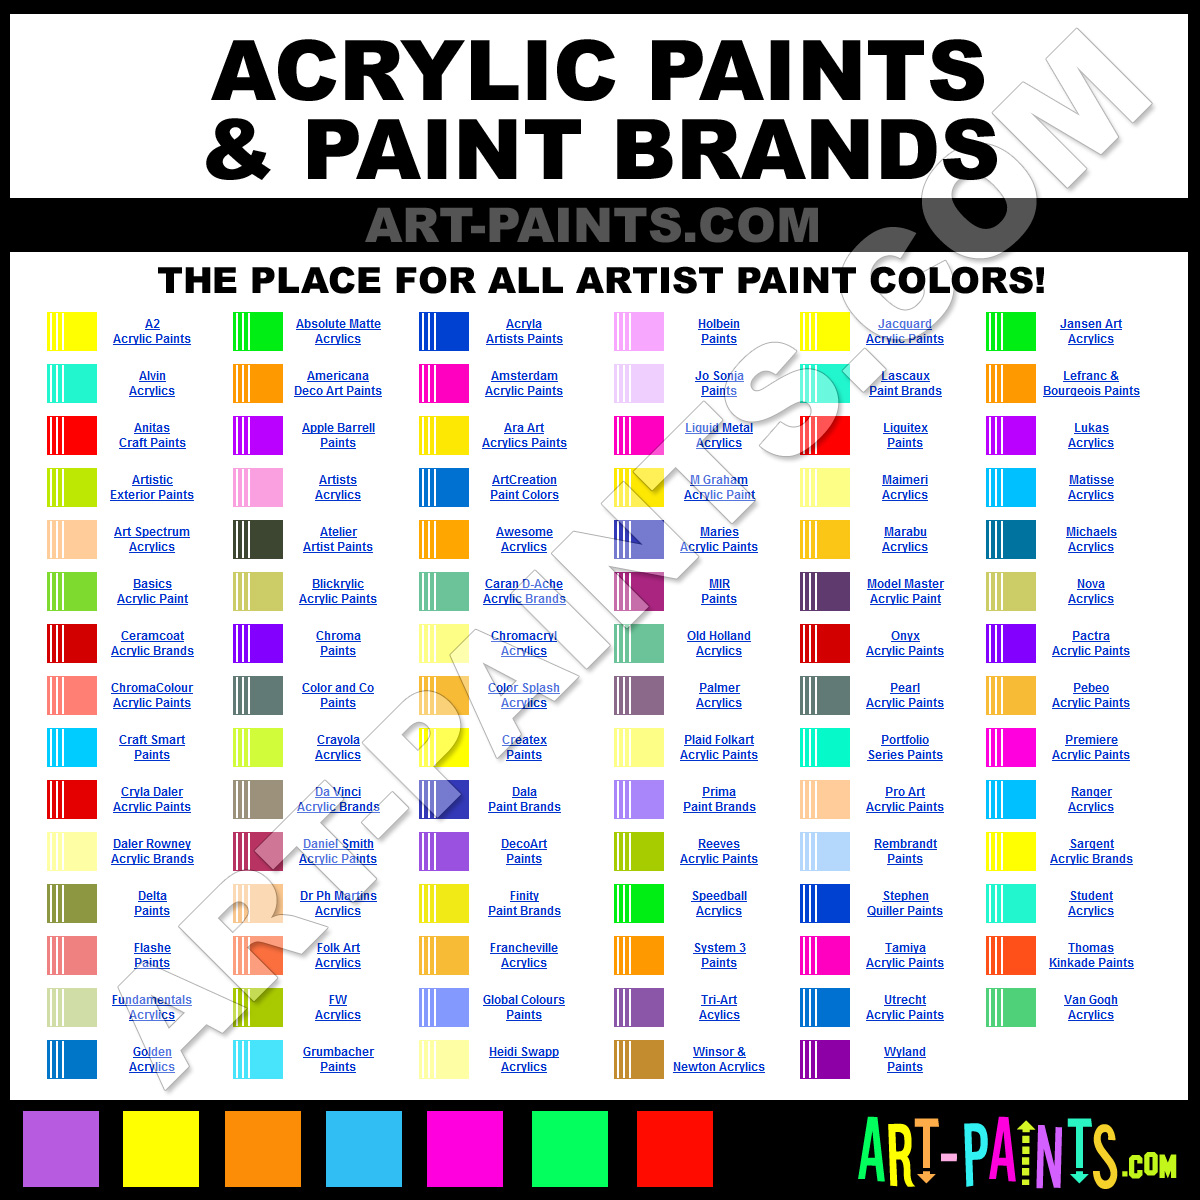 Acrylic Art Paints Paint Color Brands